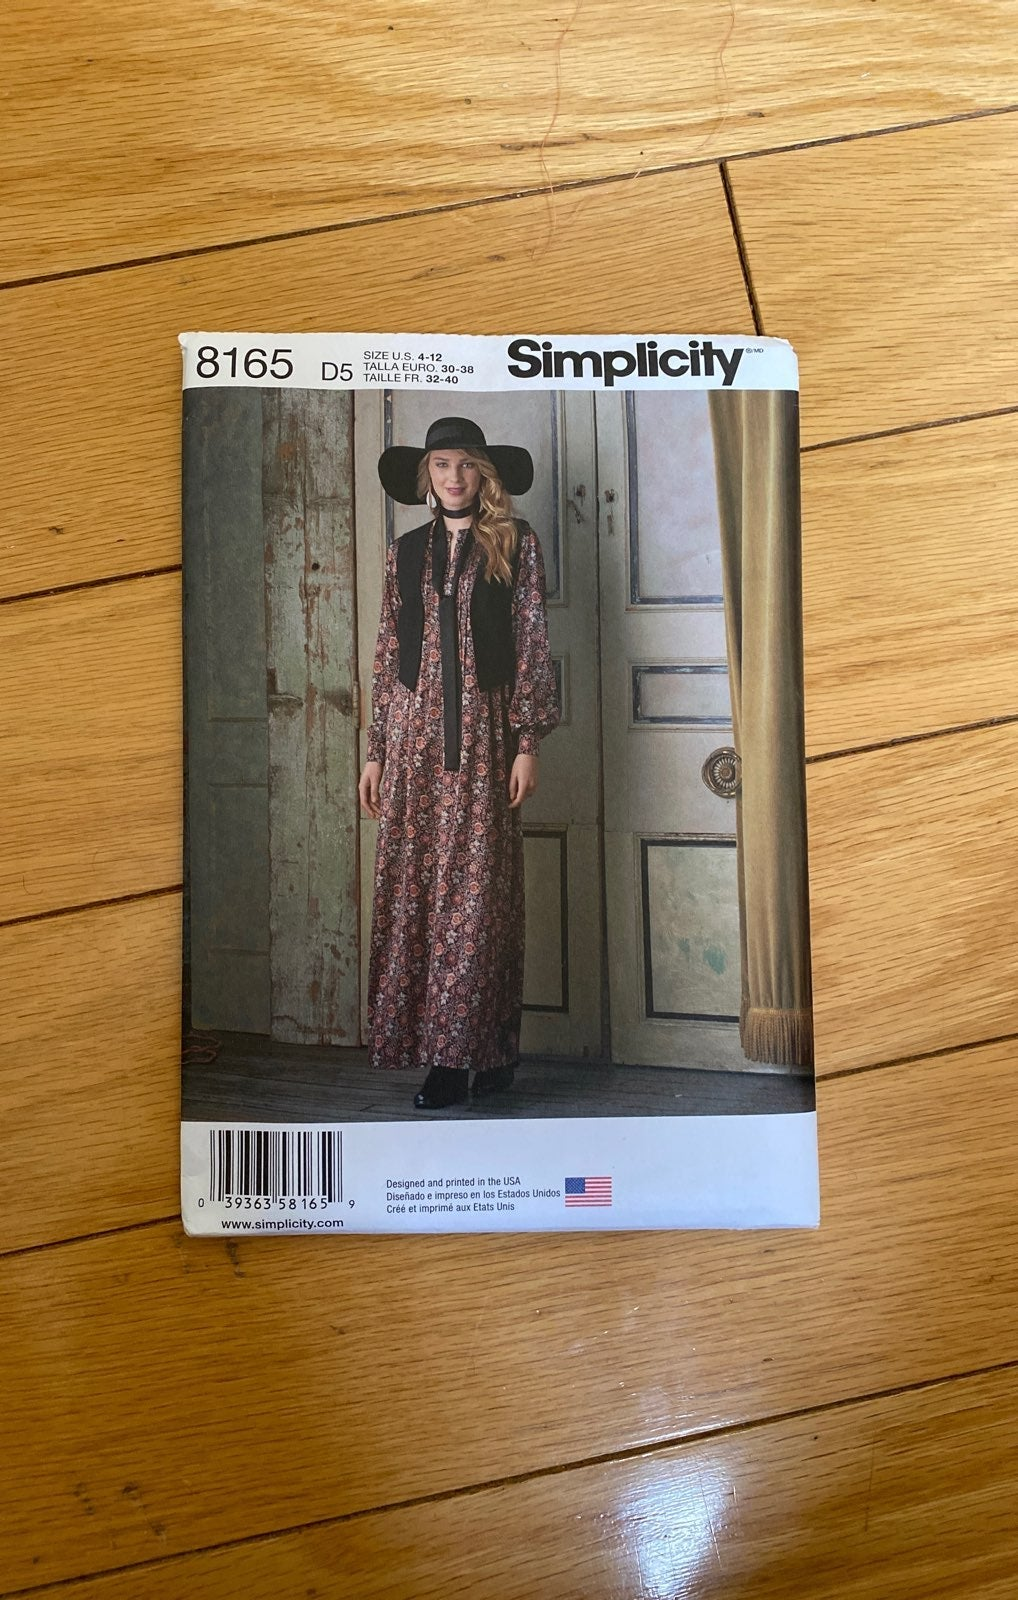 Simplicity 8165 sewing pattern